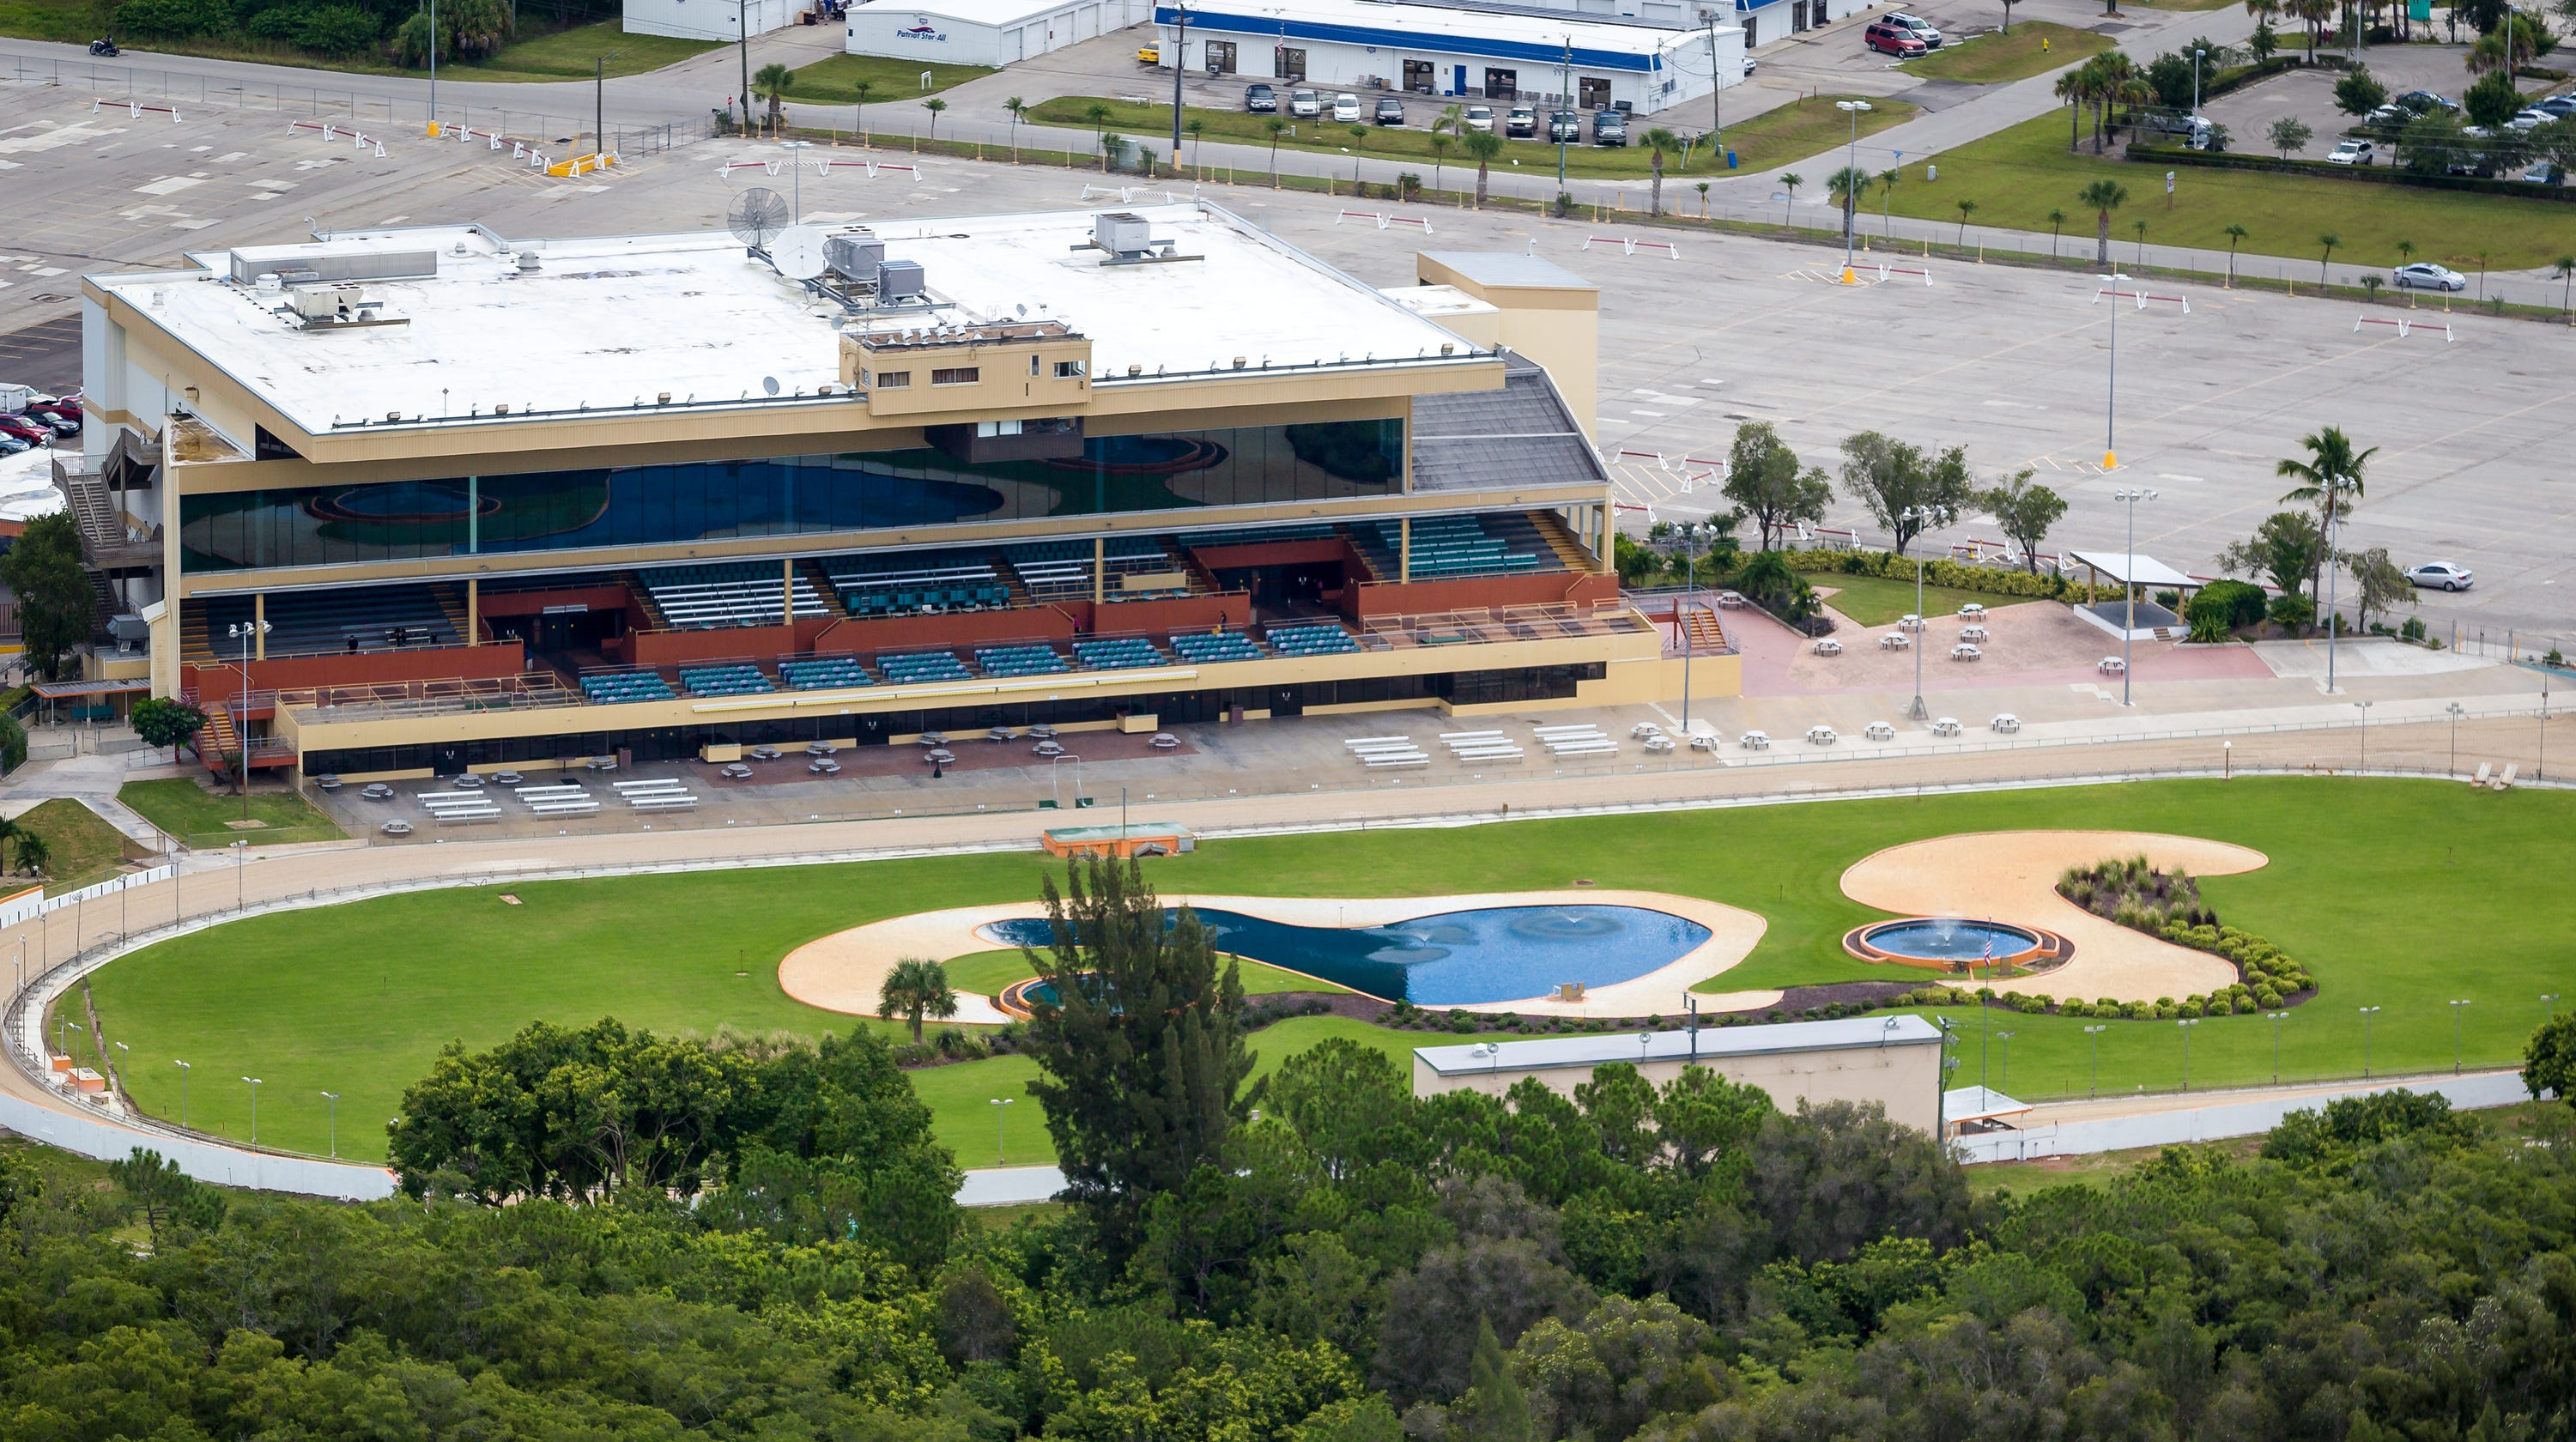 Bonita greyhound racing track could be demolished, replaced with